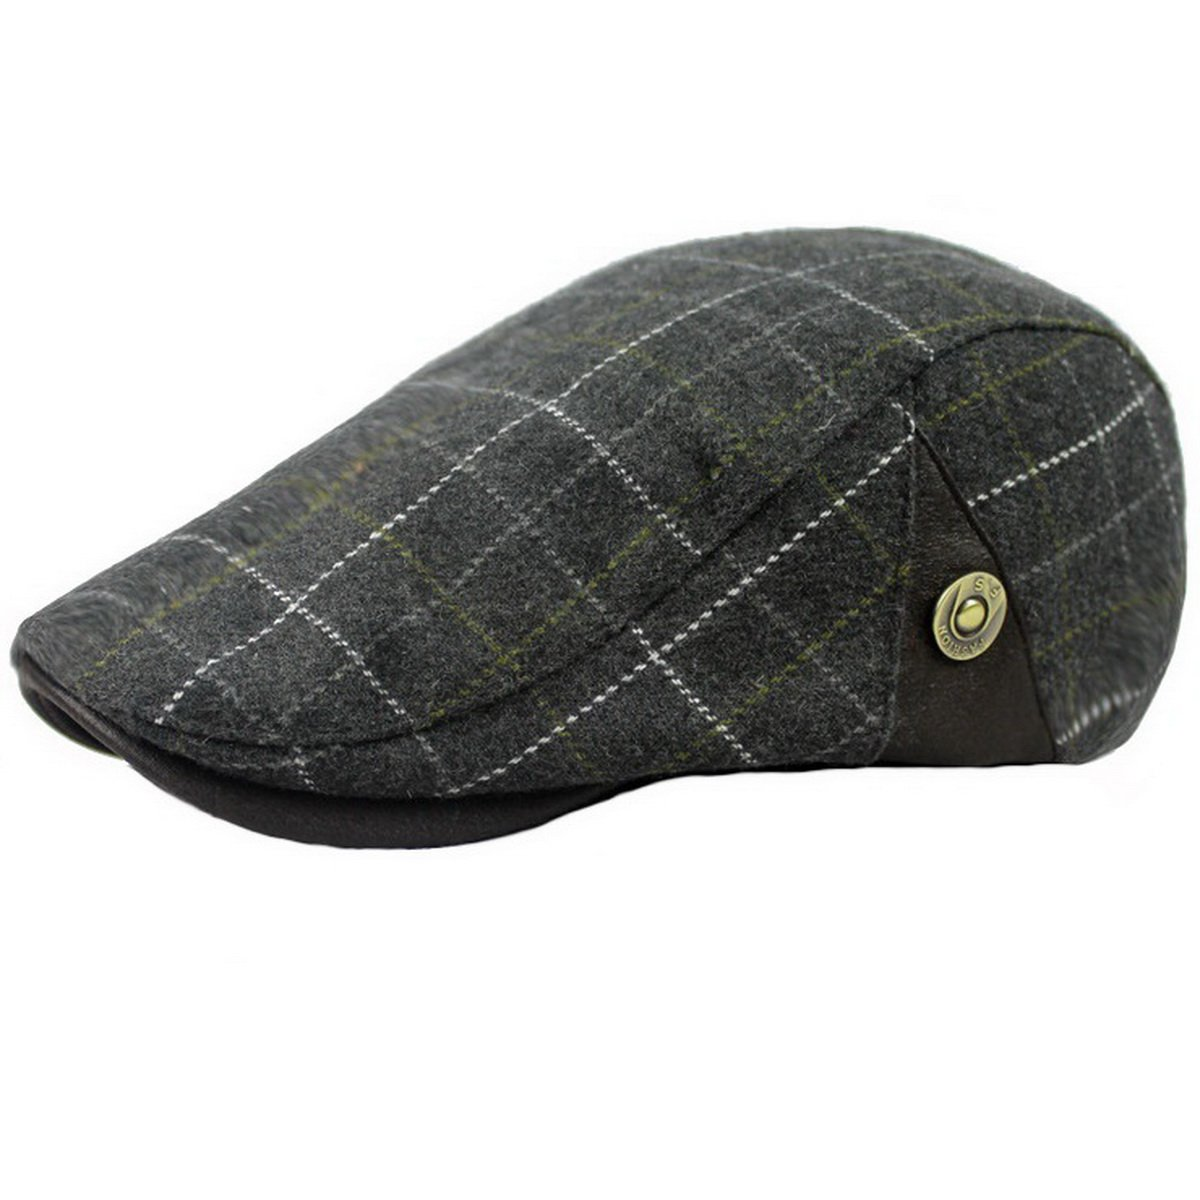 Ukerdo Mens Plaid Flat Berets Hat Newsboy Cabbie Duckbill Caps Cap-171